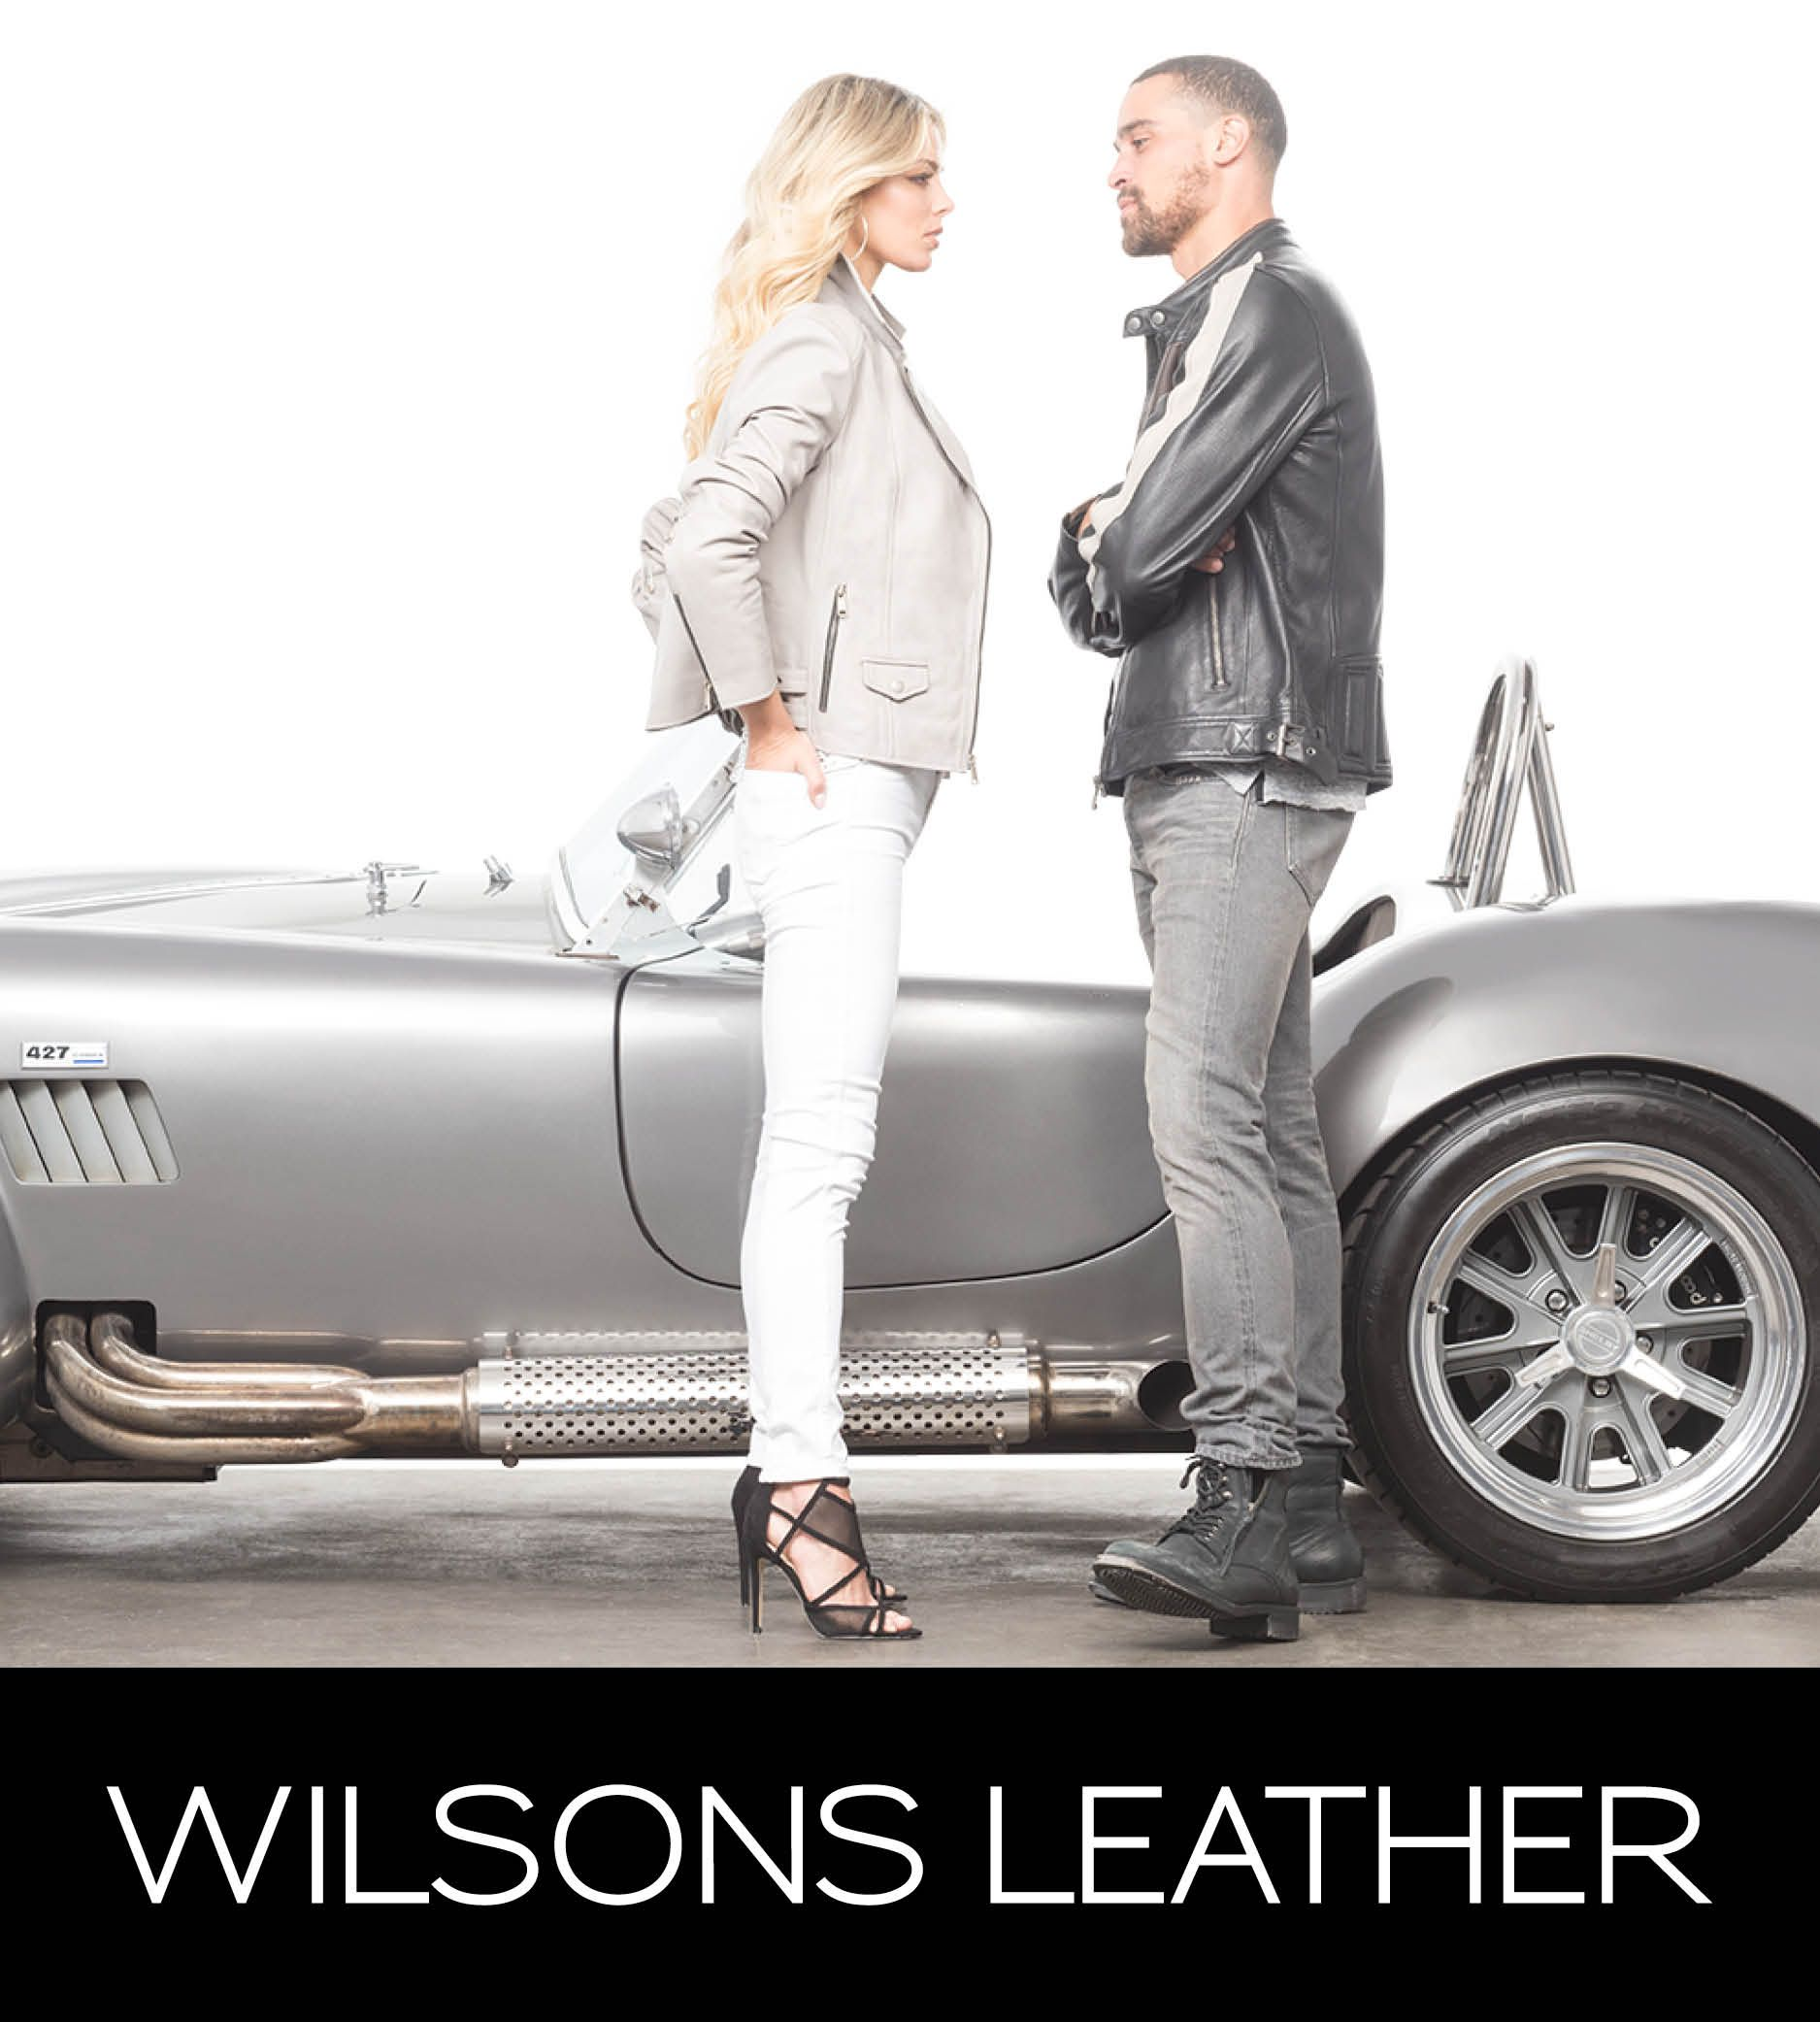 Wilsons Leather Last Chance Clearance! 50 Off Select